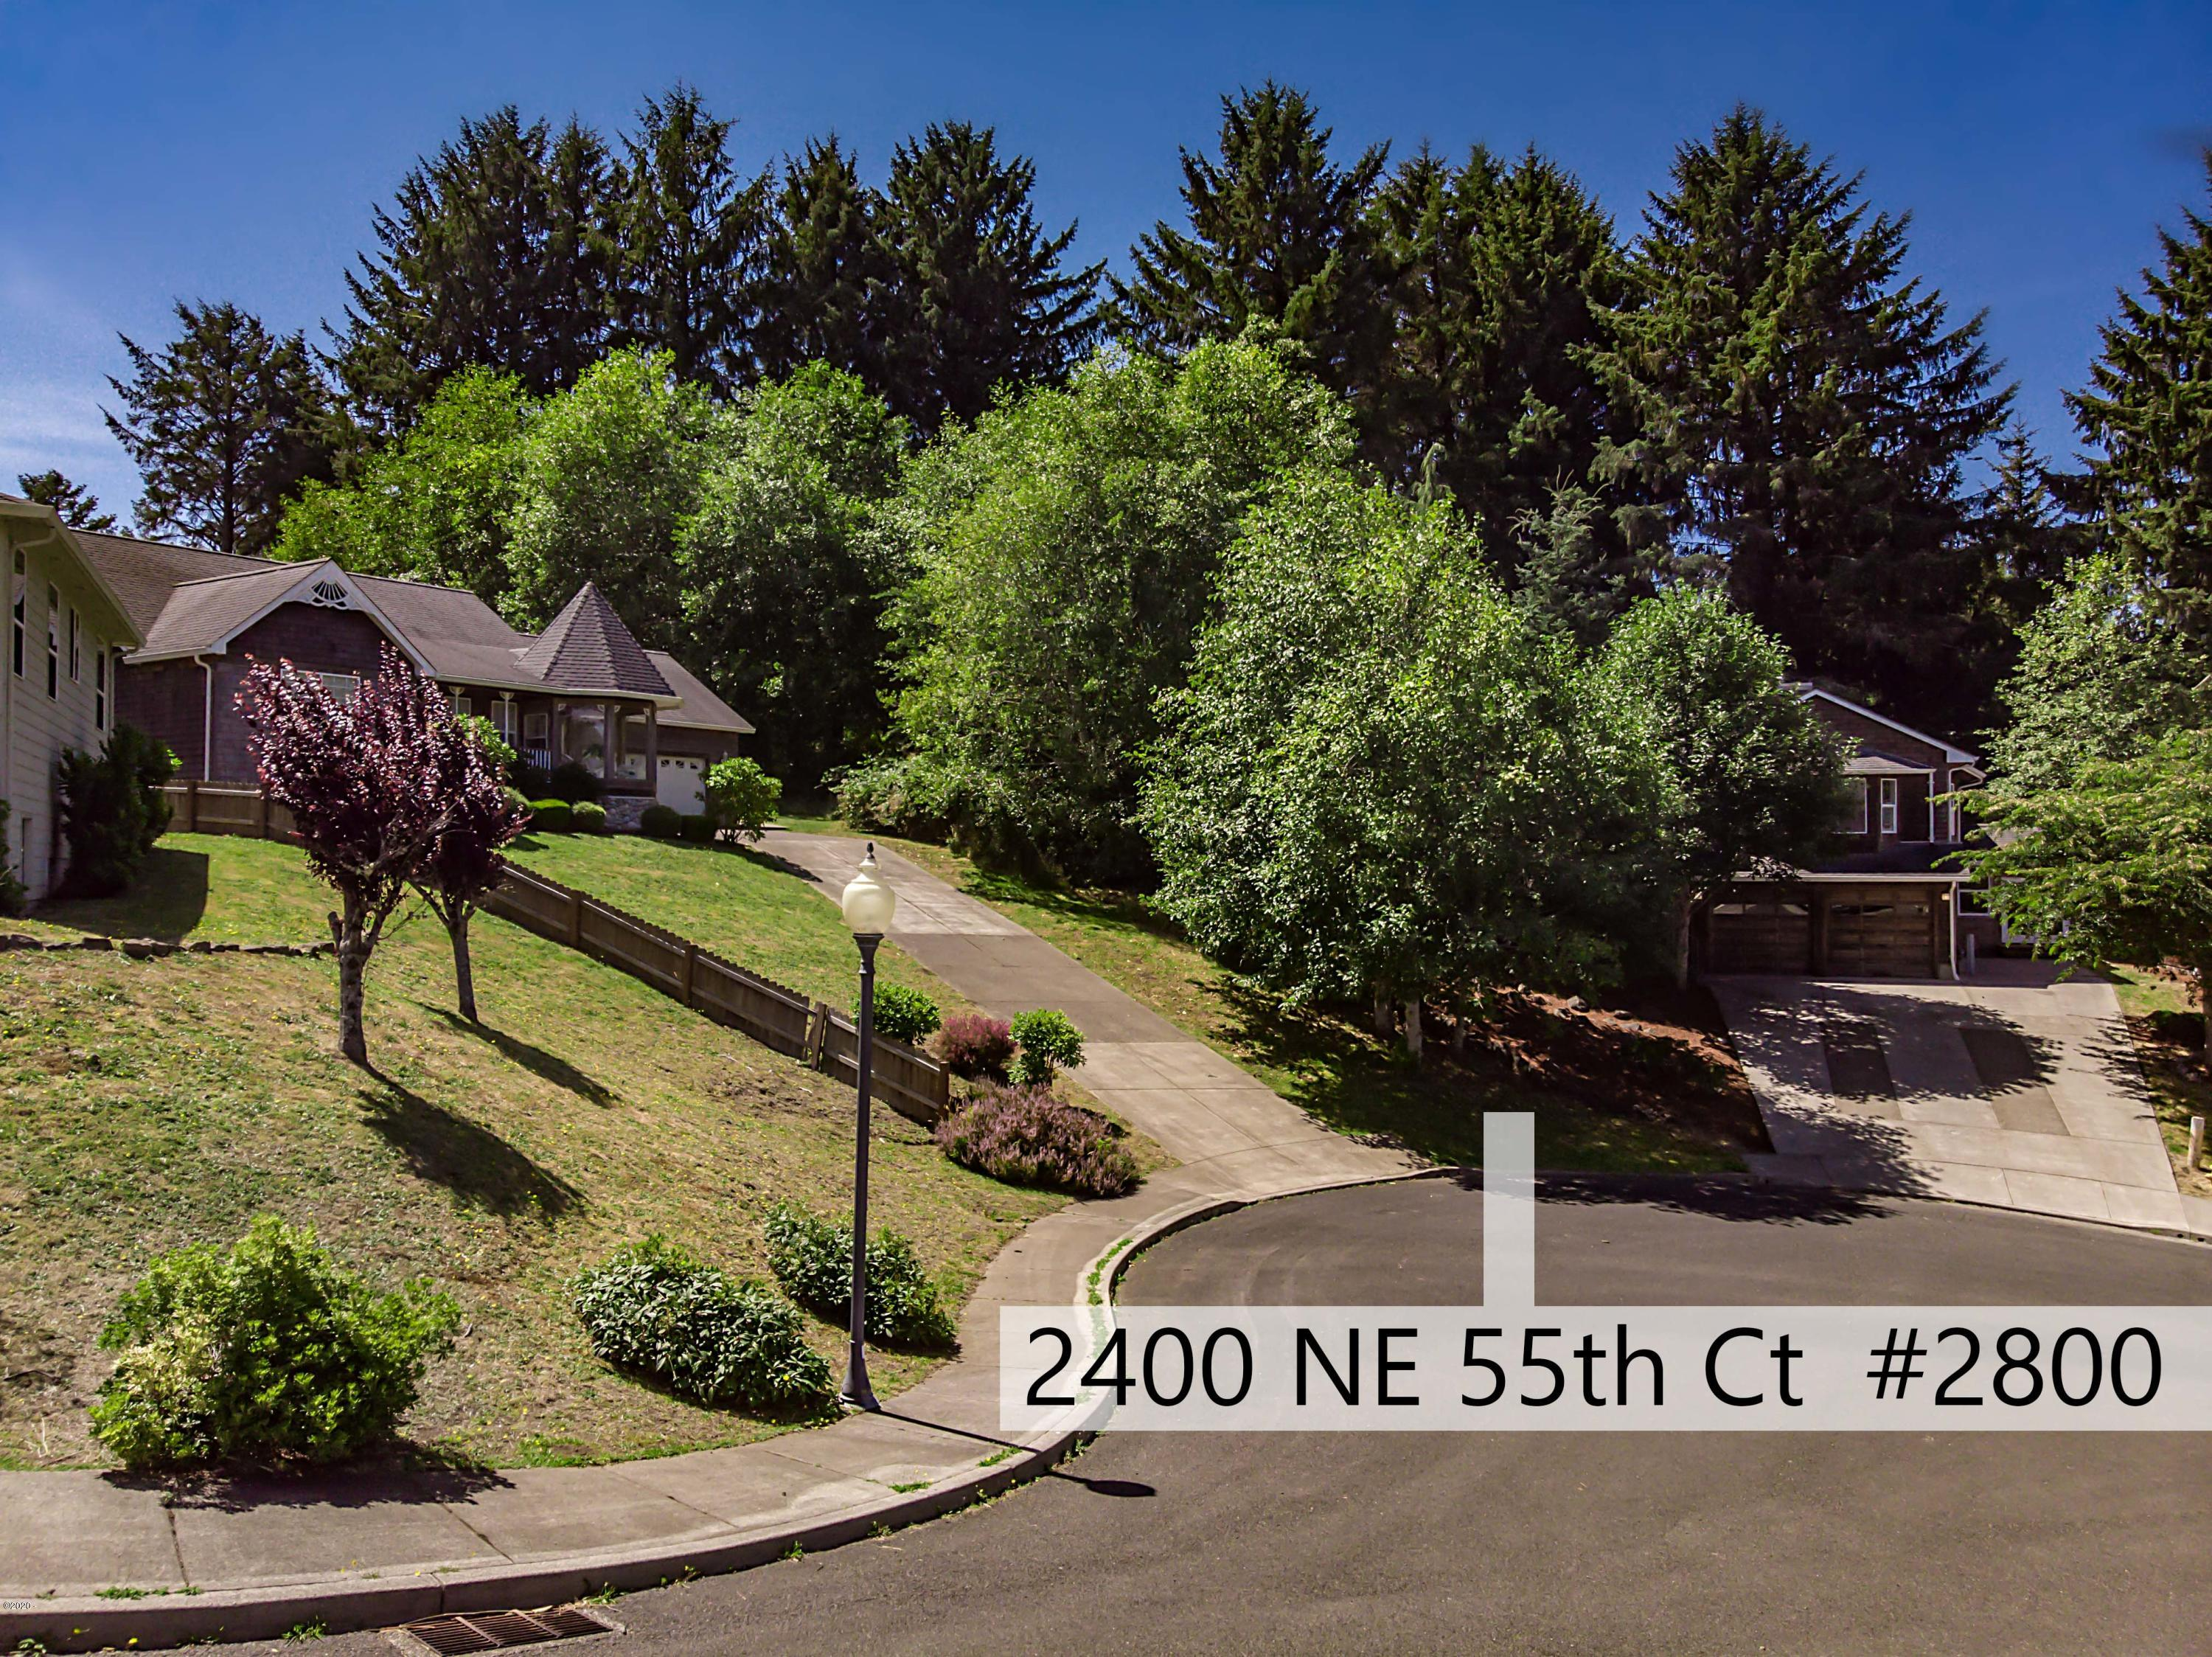 2400 Blk Ne 55th Ct Tl 2800, Lincoln City, OR 97367